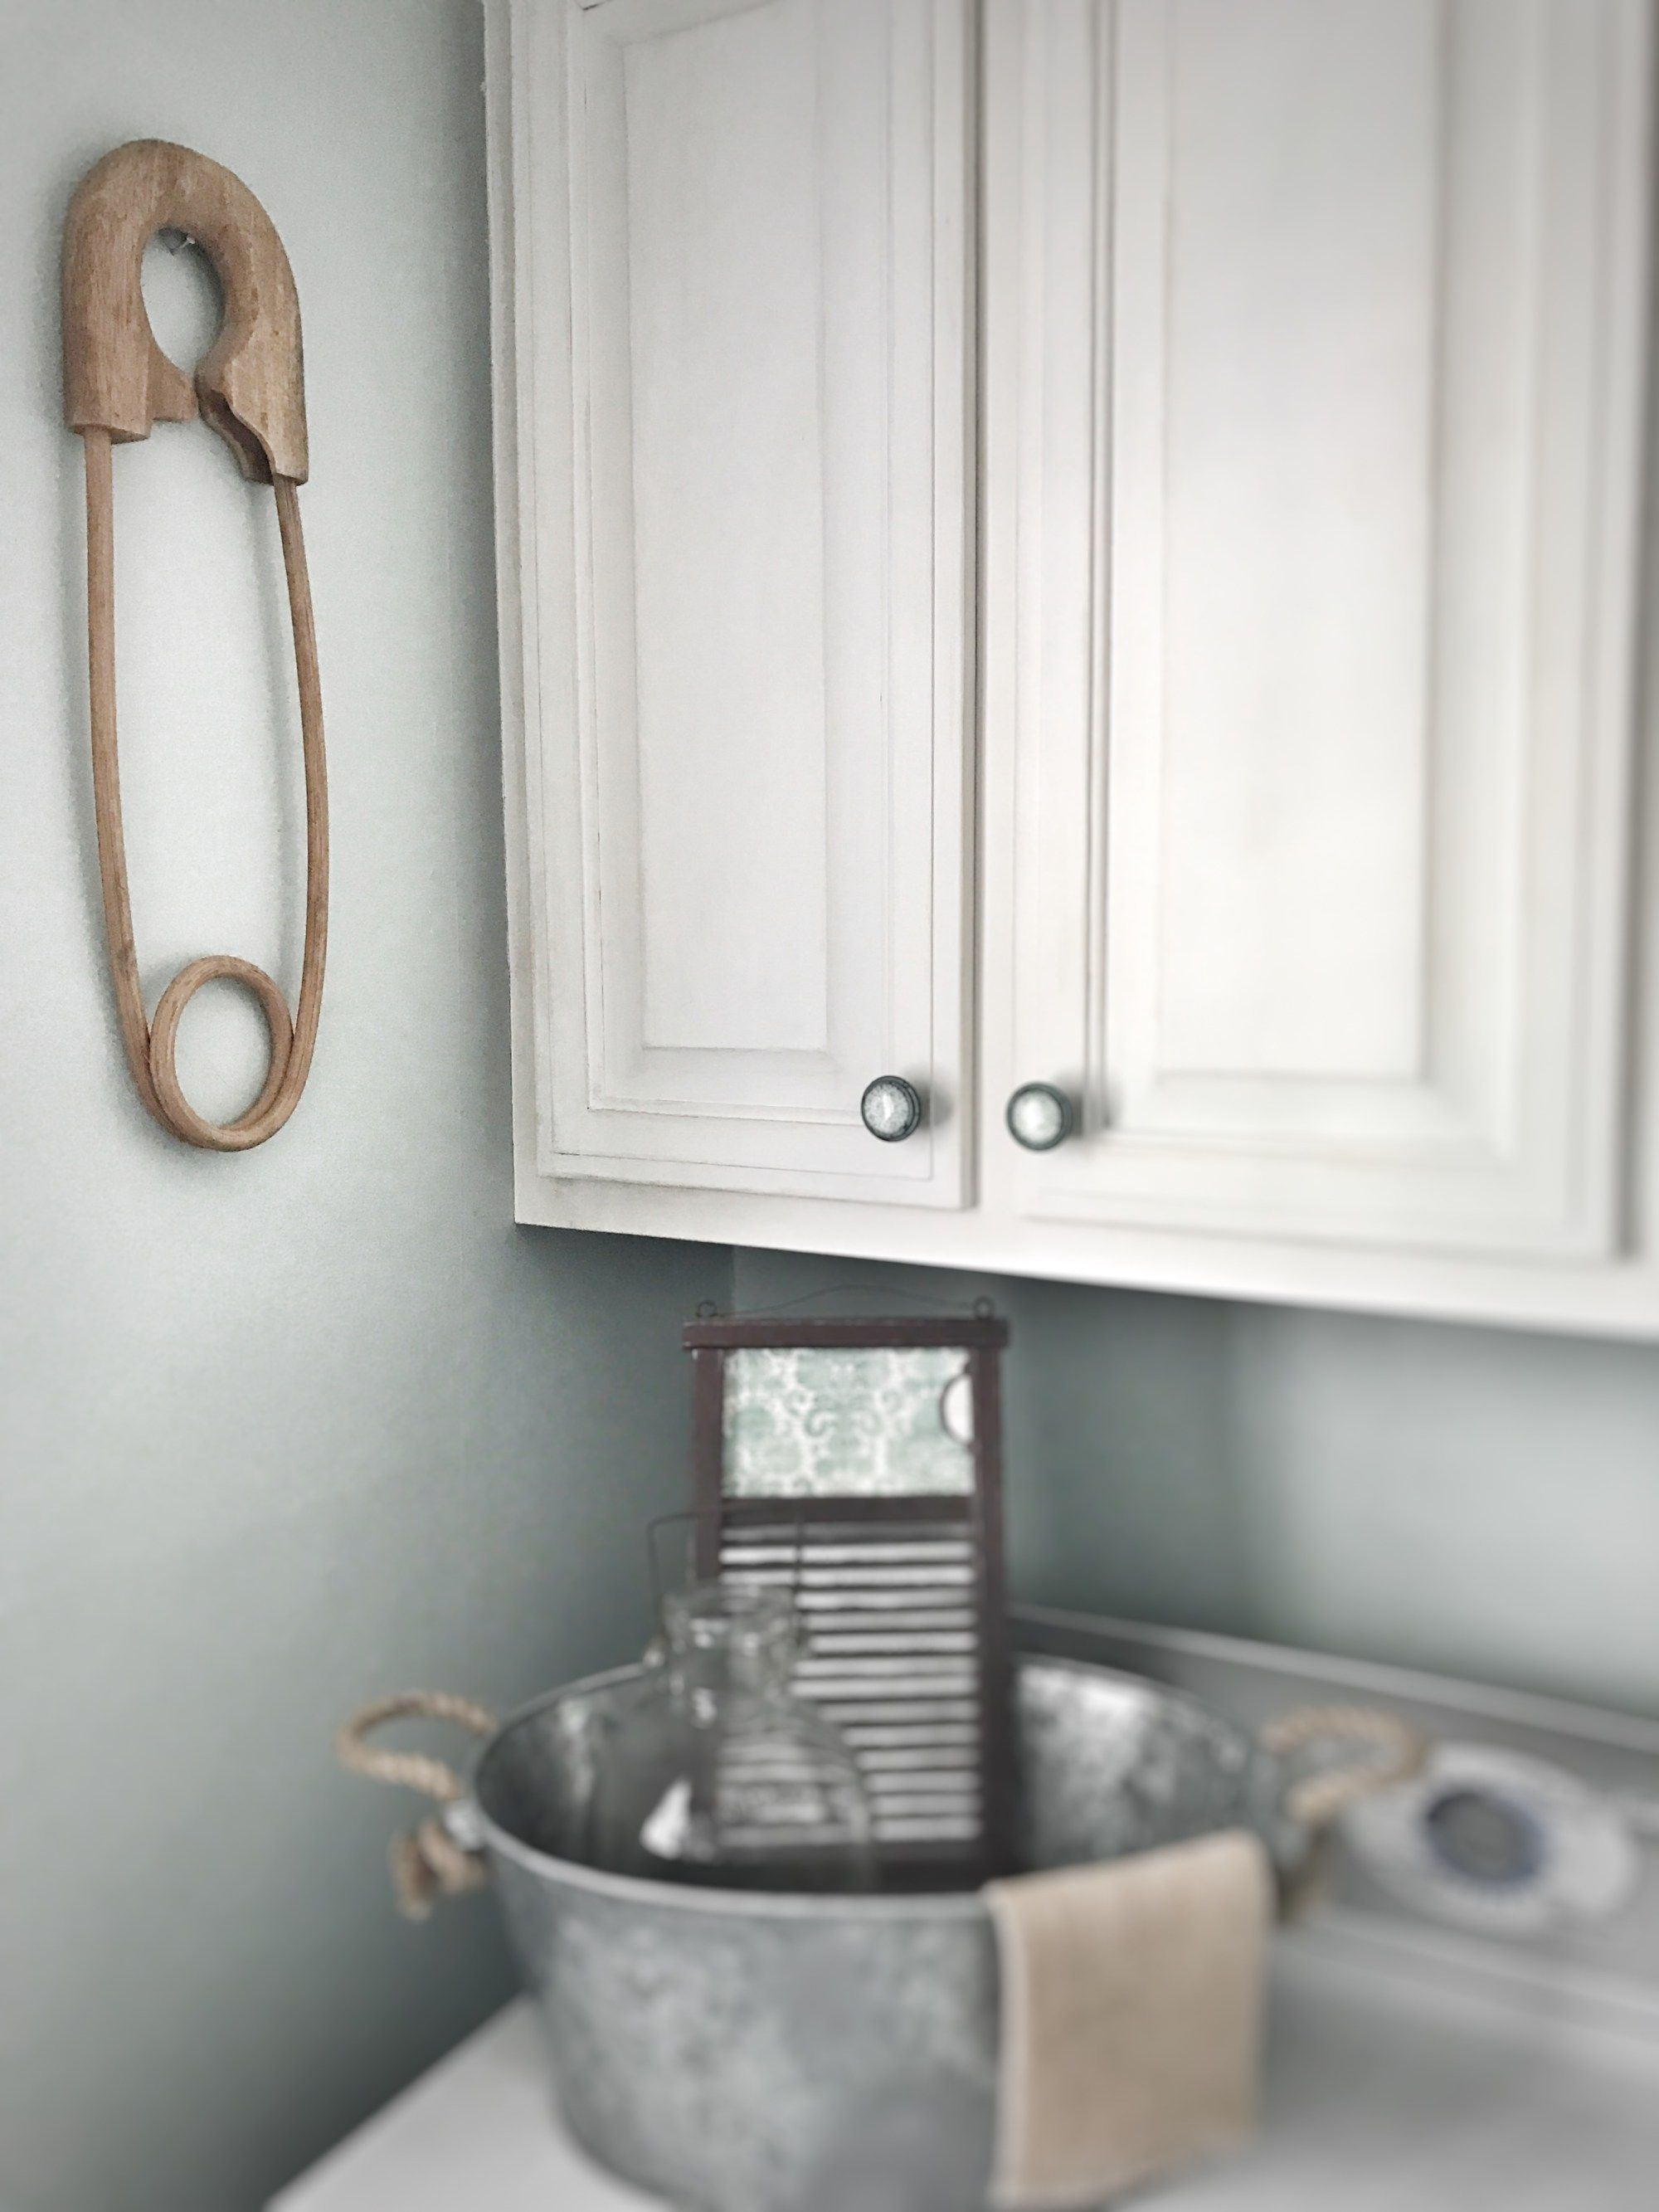 Laundry Room Makeover 5 Easy Steps - Bless This Nest